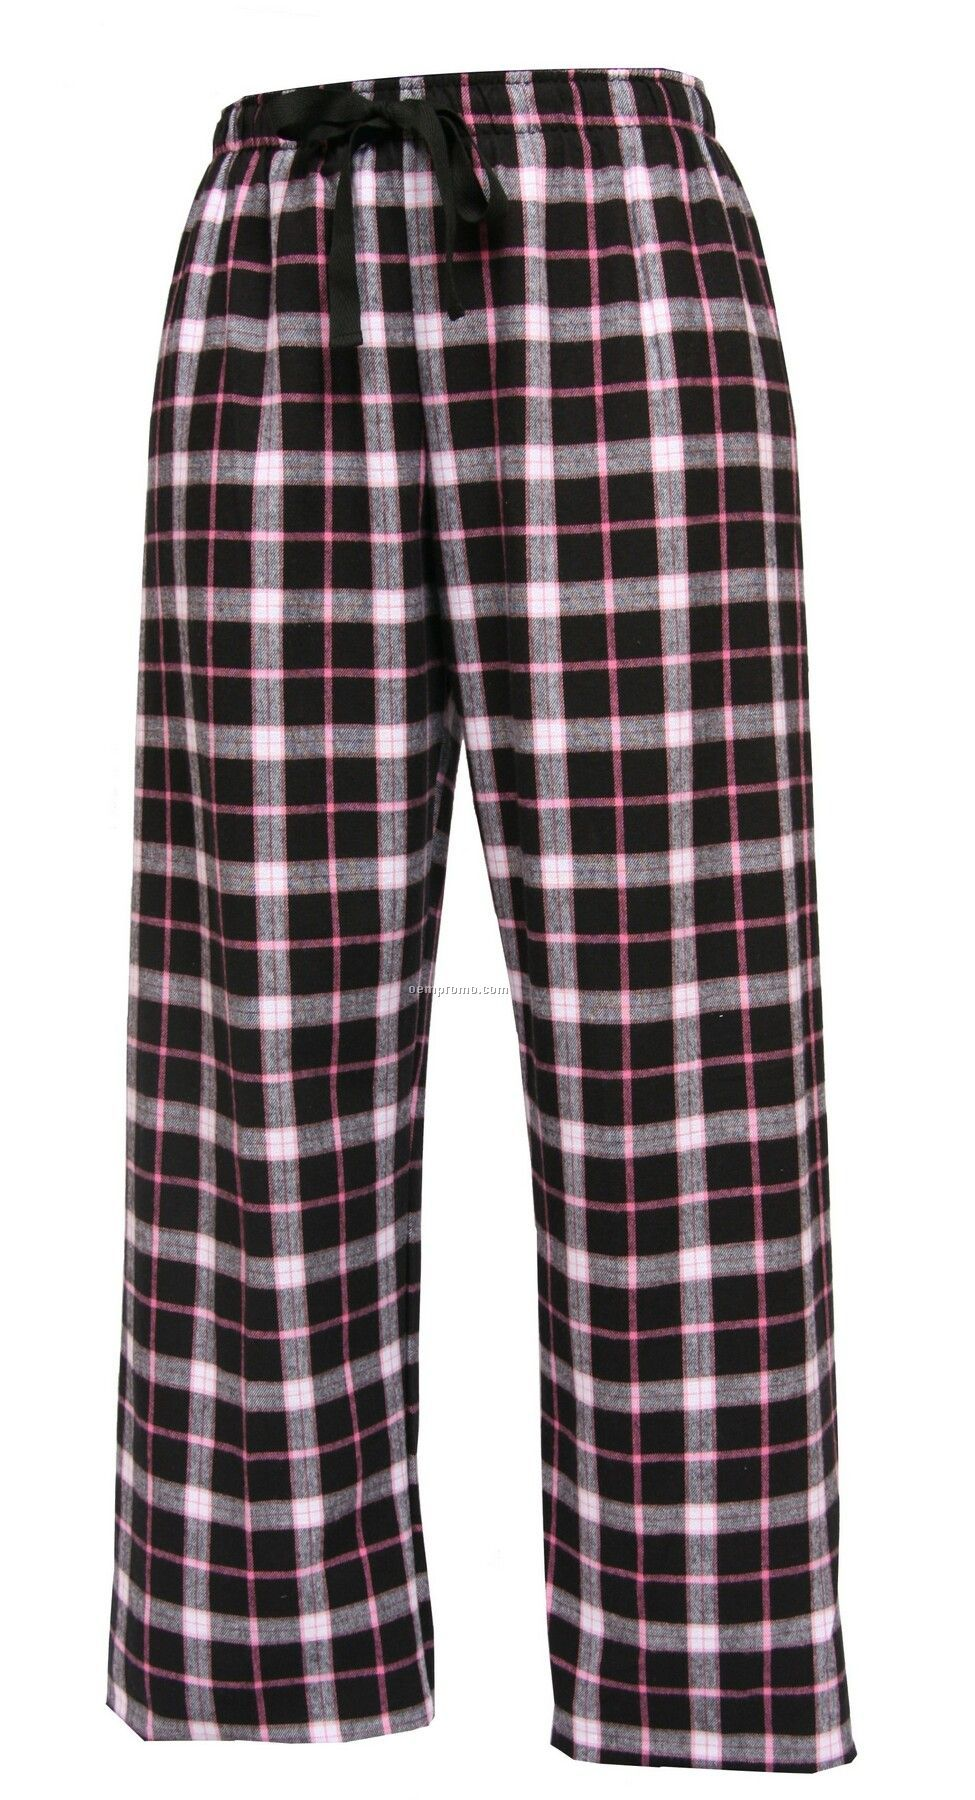 Adult Black/Pink Plaid Fashion Flannel Pant With Tie Cord